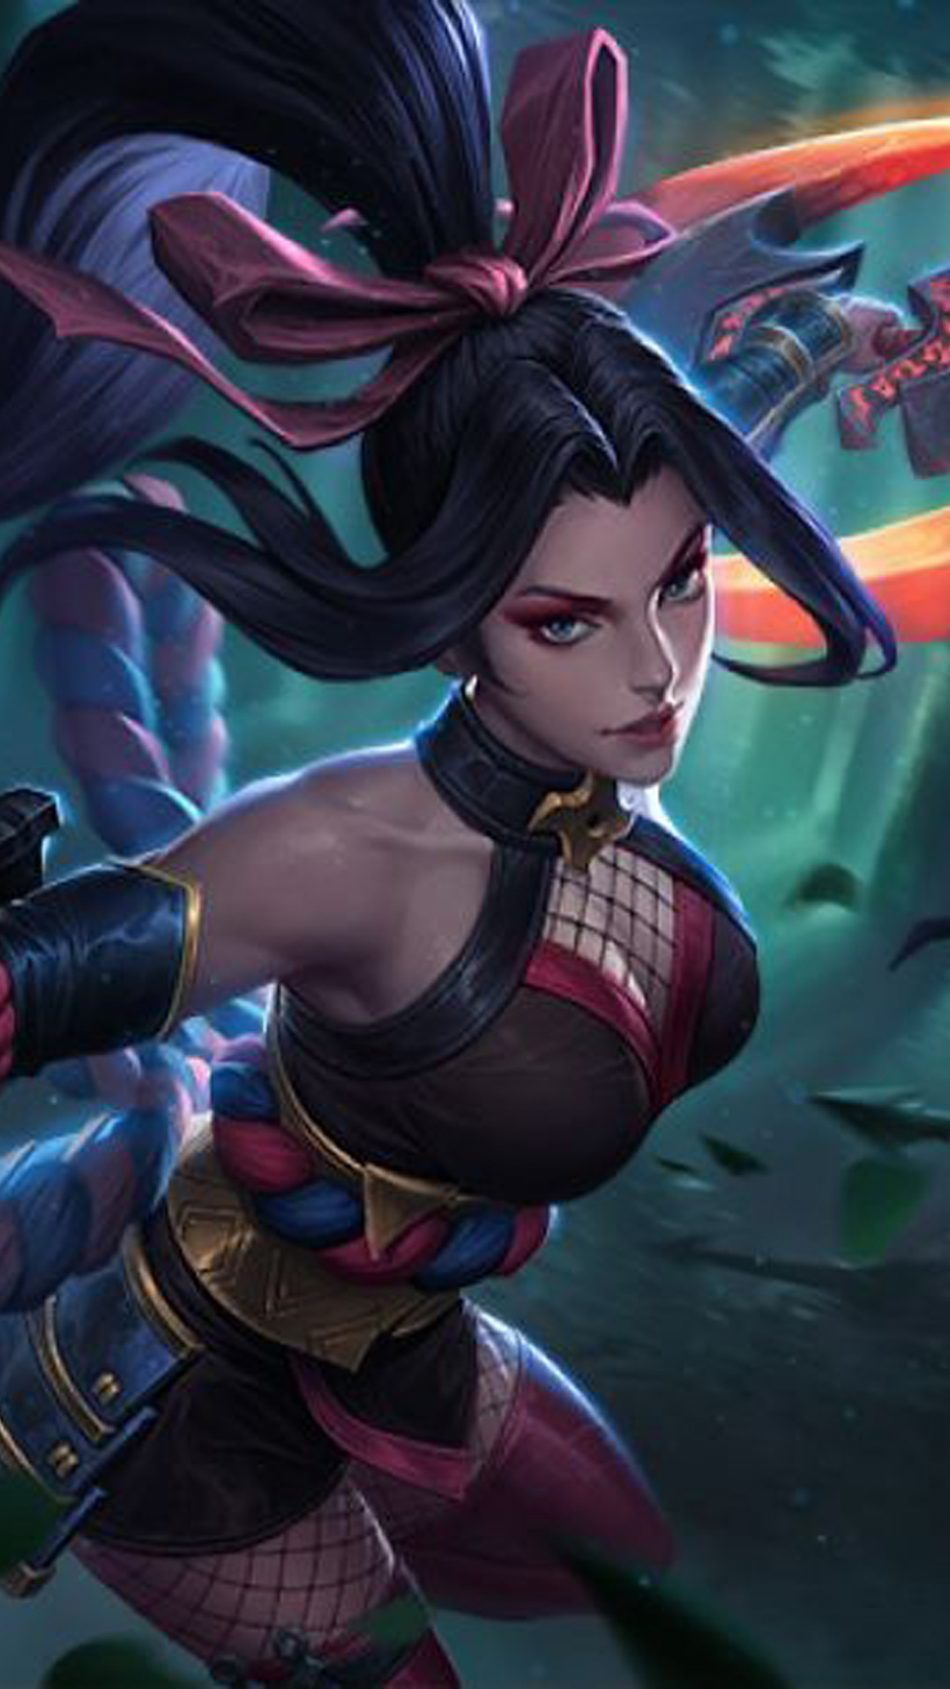 Hanabi Mobile Legends Mobile Legends Mobile legends Mobile 950x1689